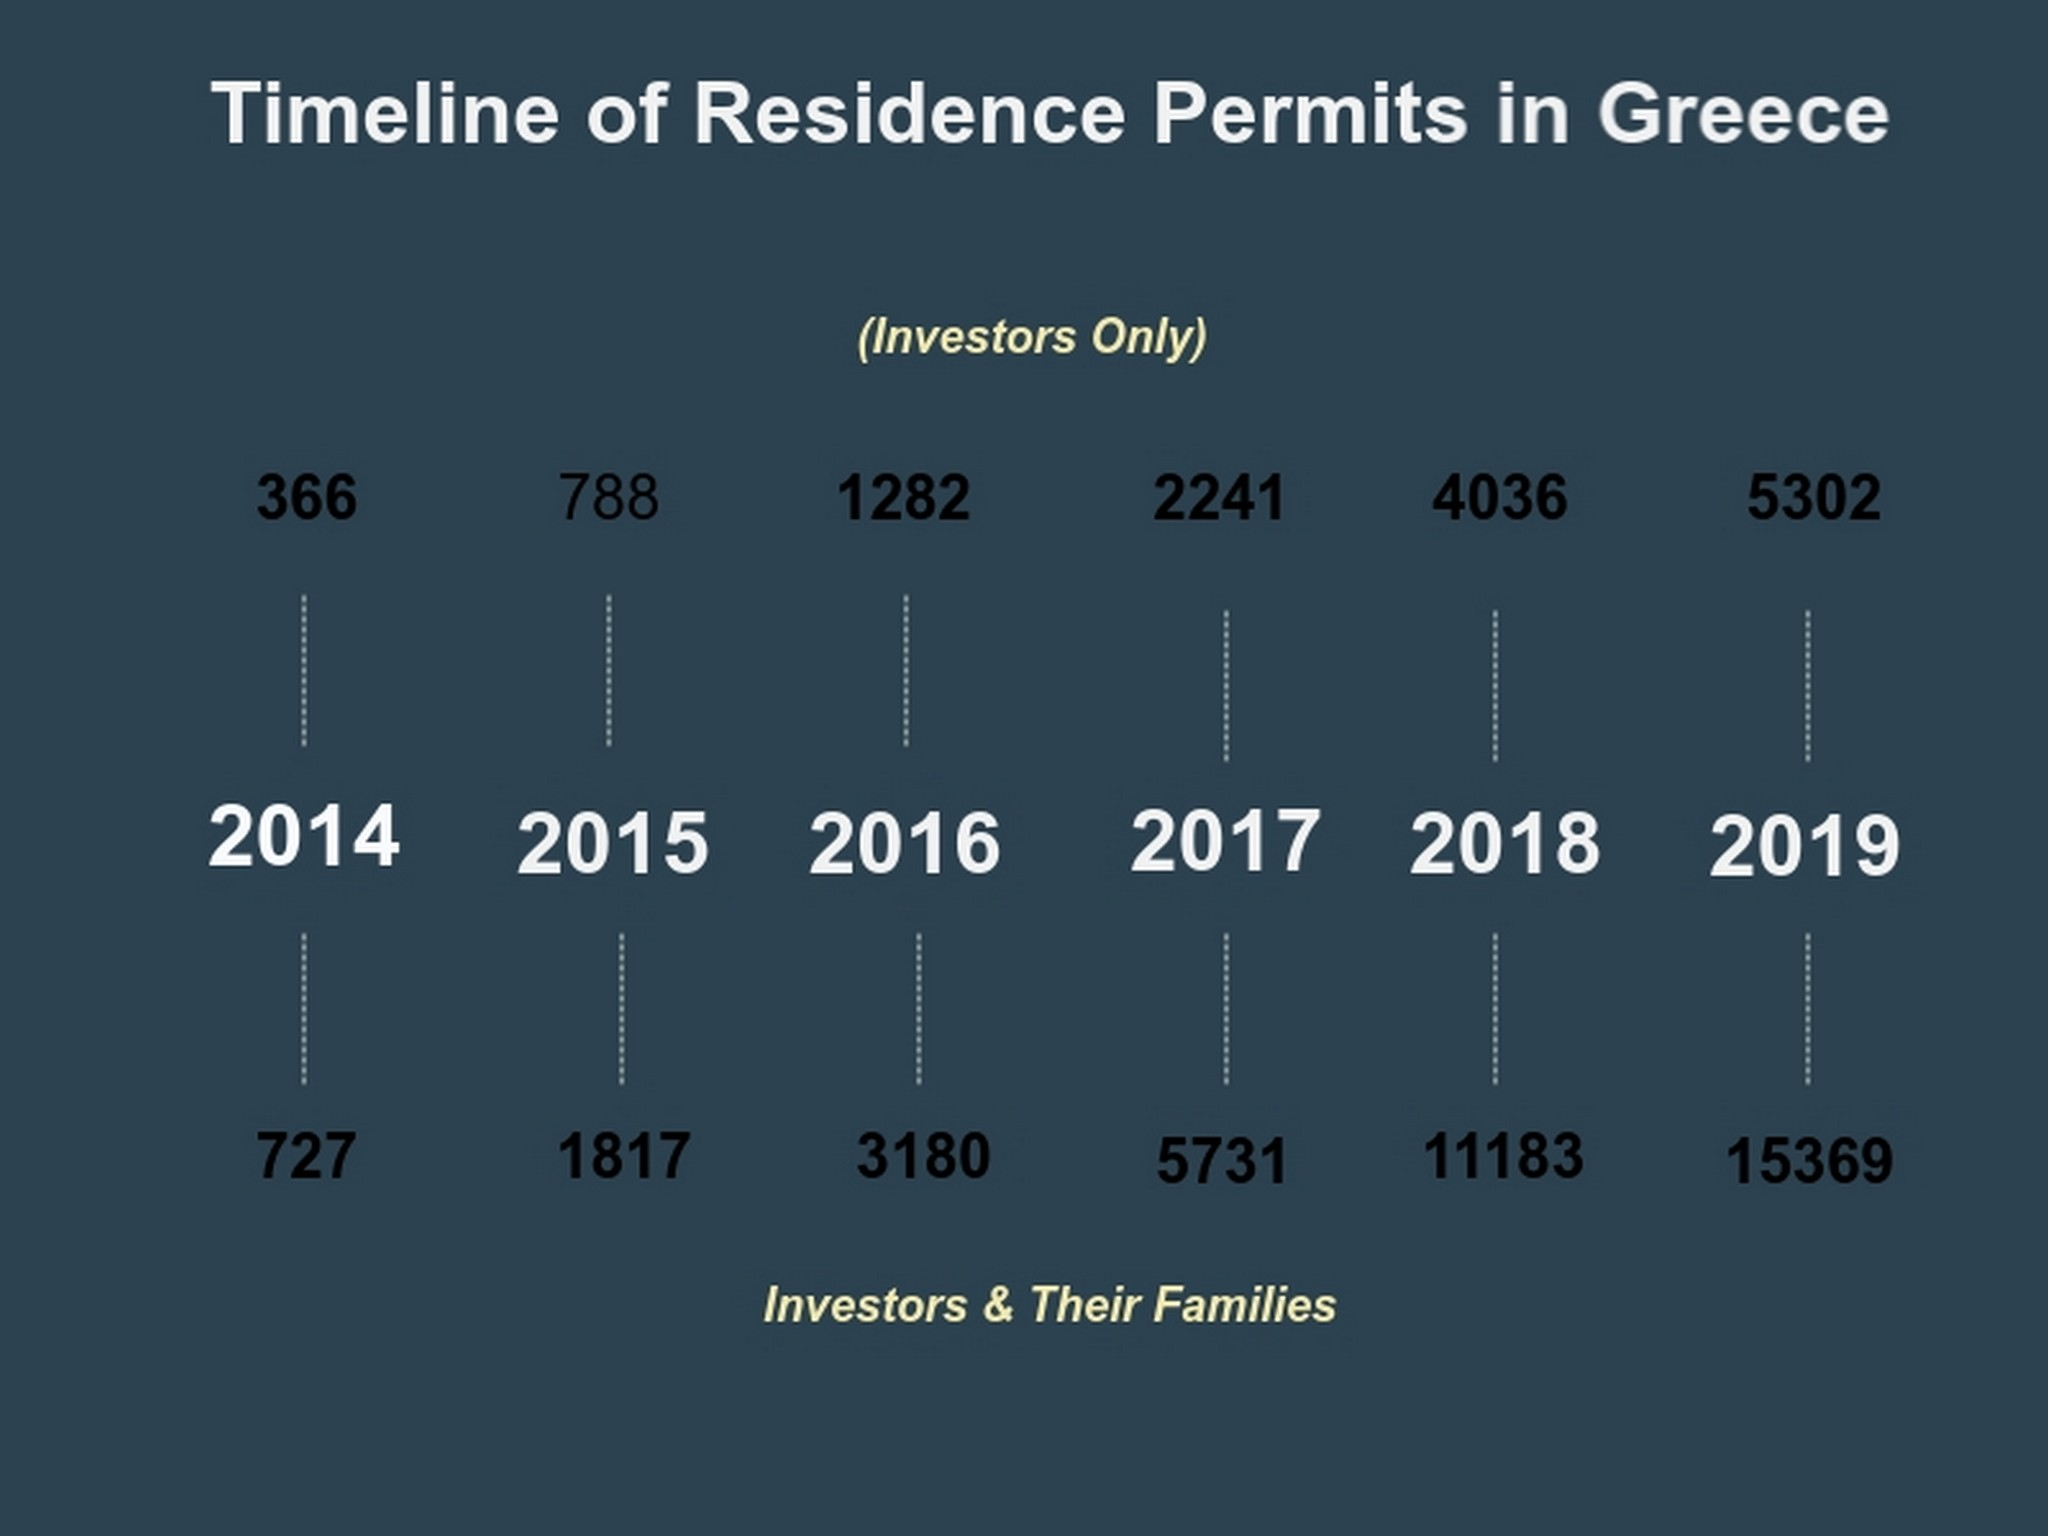 Timeline of Residence Permits in Greece by Divine Property